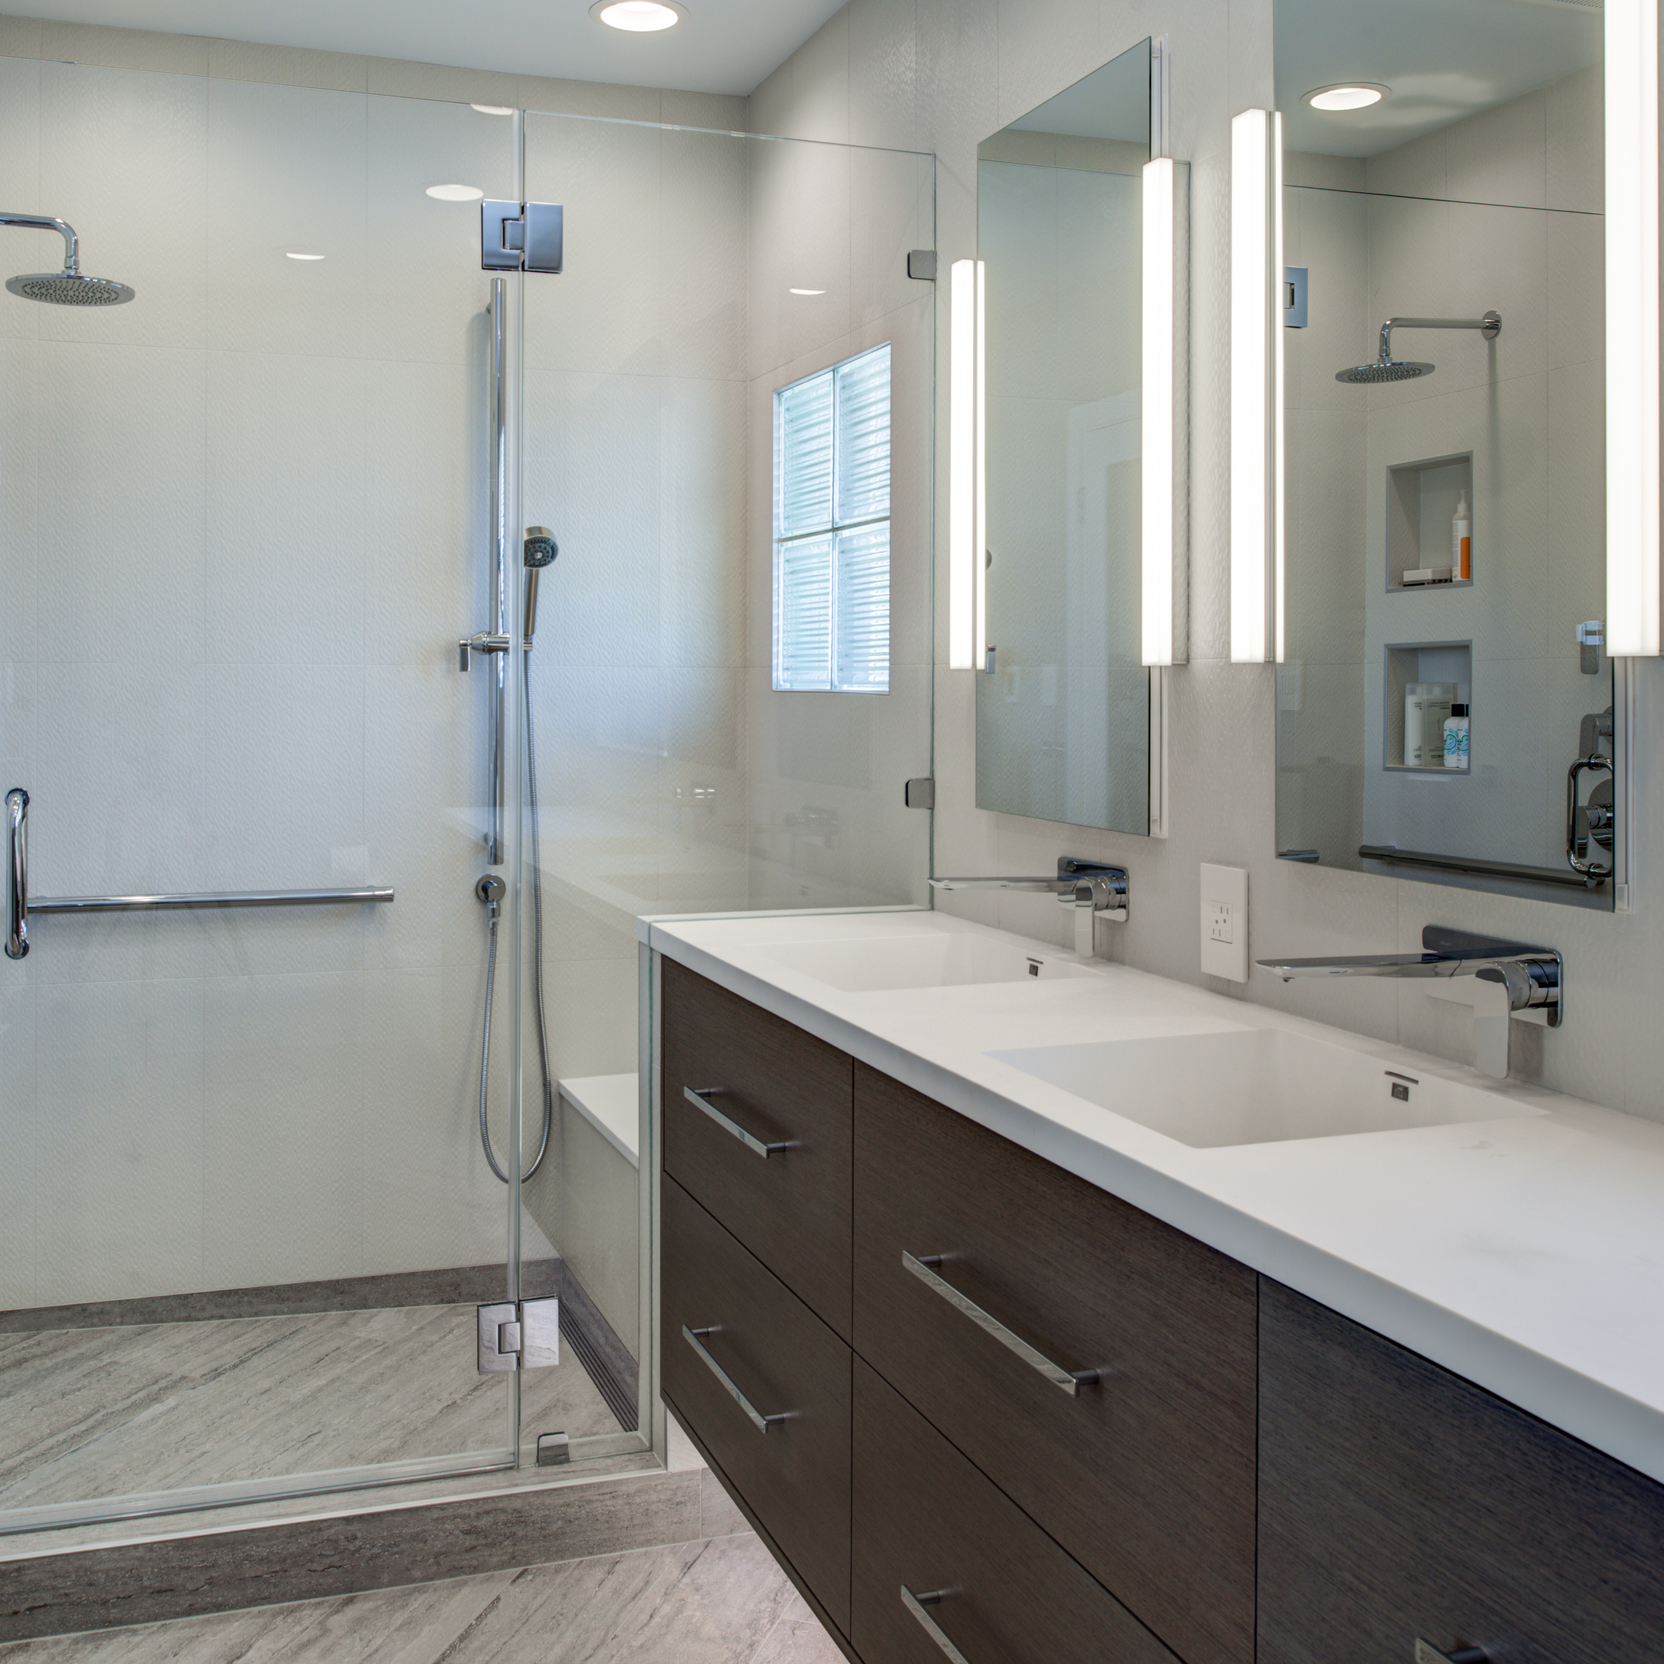 Berkeley Thousand Oaks Modern Master Bathroom  Regional Winner of the 2017 CoTY (Contractor of The Year Awards) through the National Association of the Remodeling Industry!  & 2016 REMMIE Winner through the National Association of the Remodeling Industry (NARI)